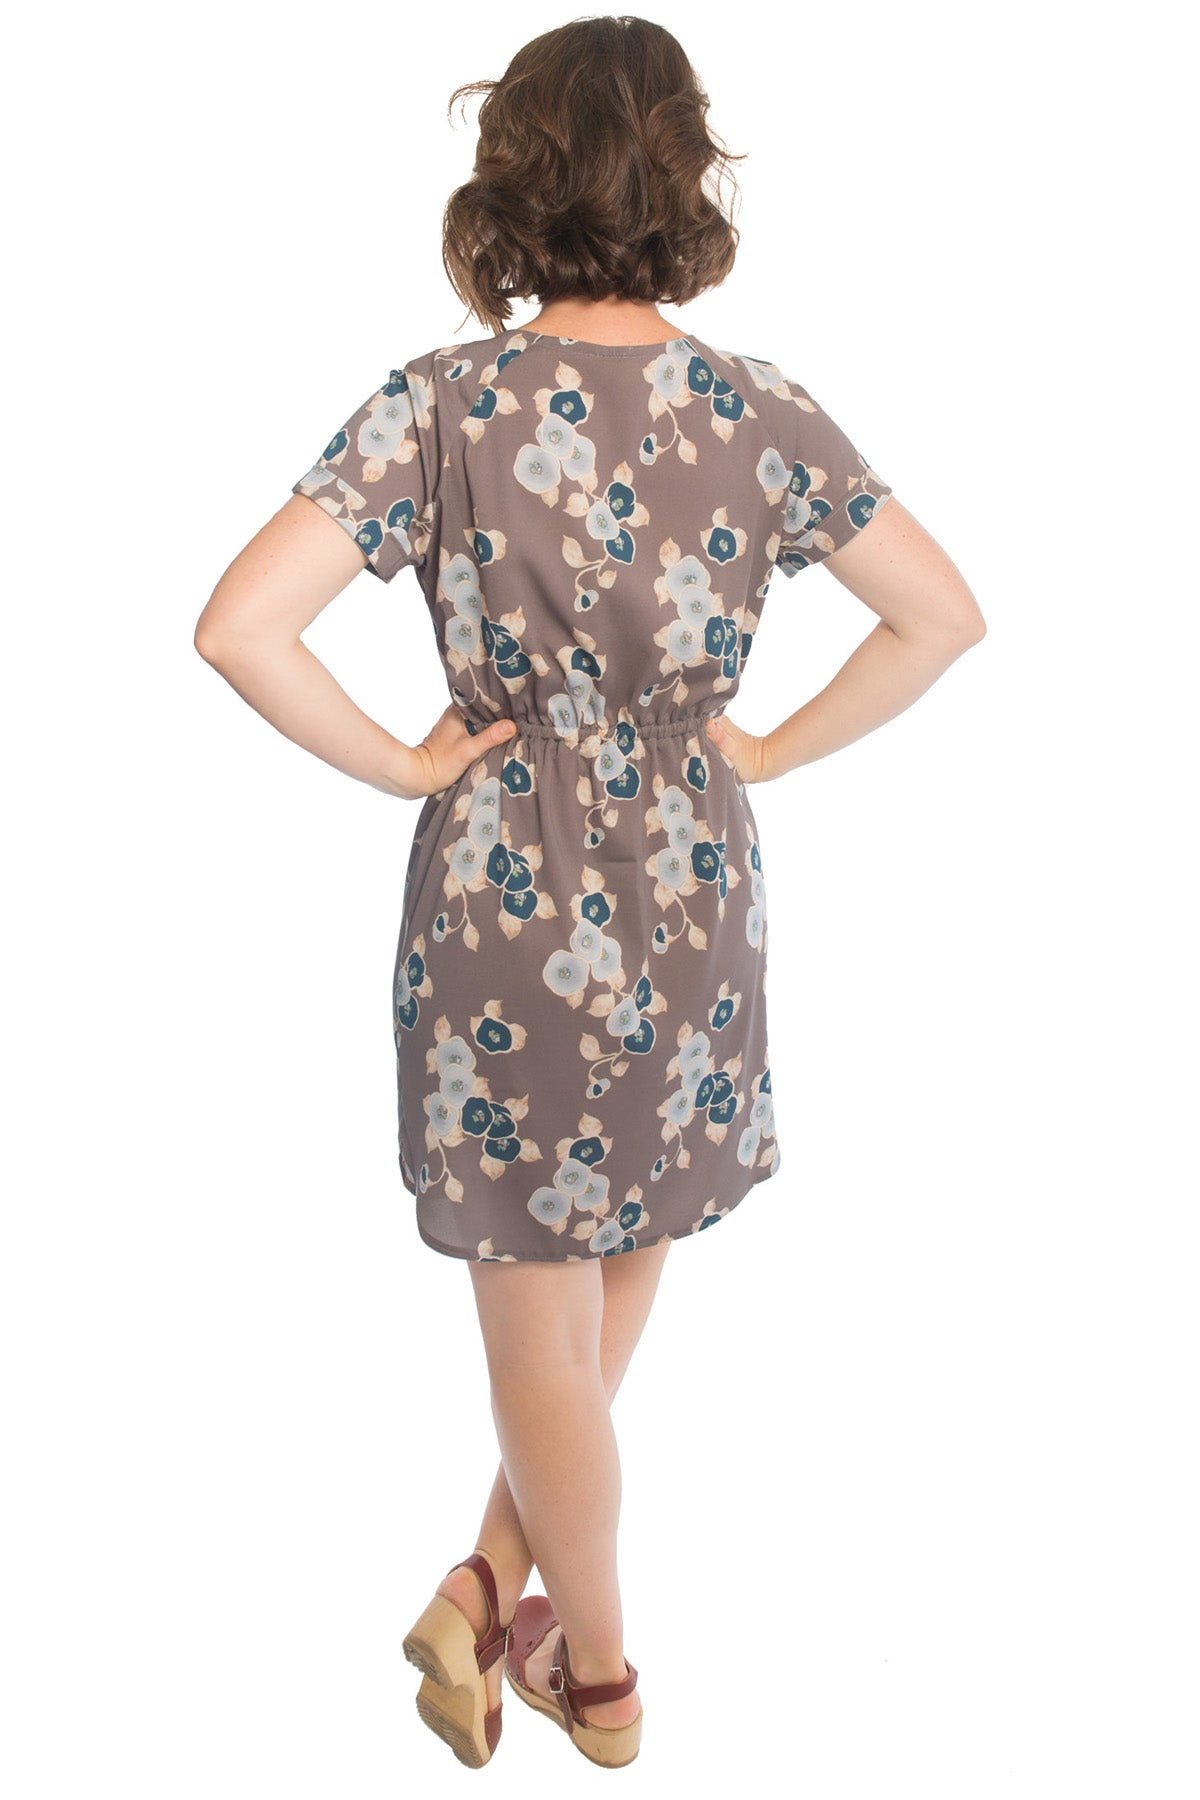 Coram Dress Back | Allie Olson Sewing Patterns